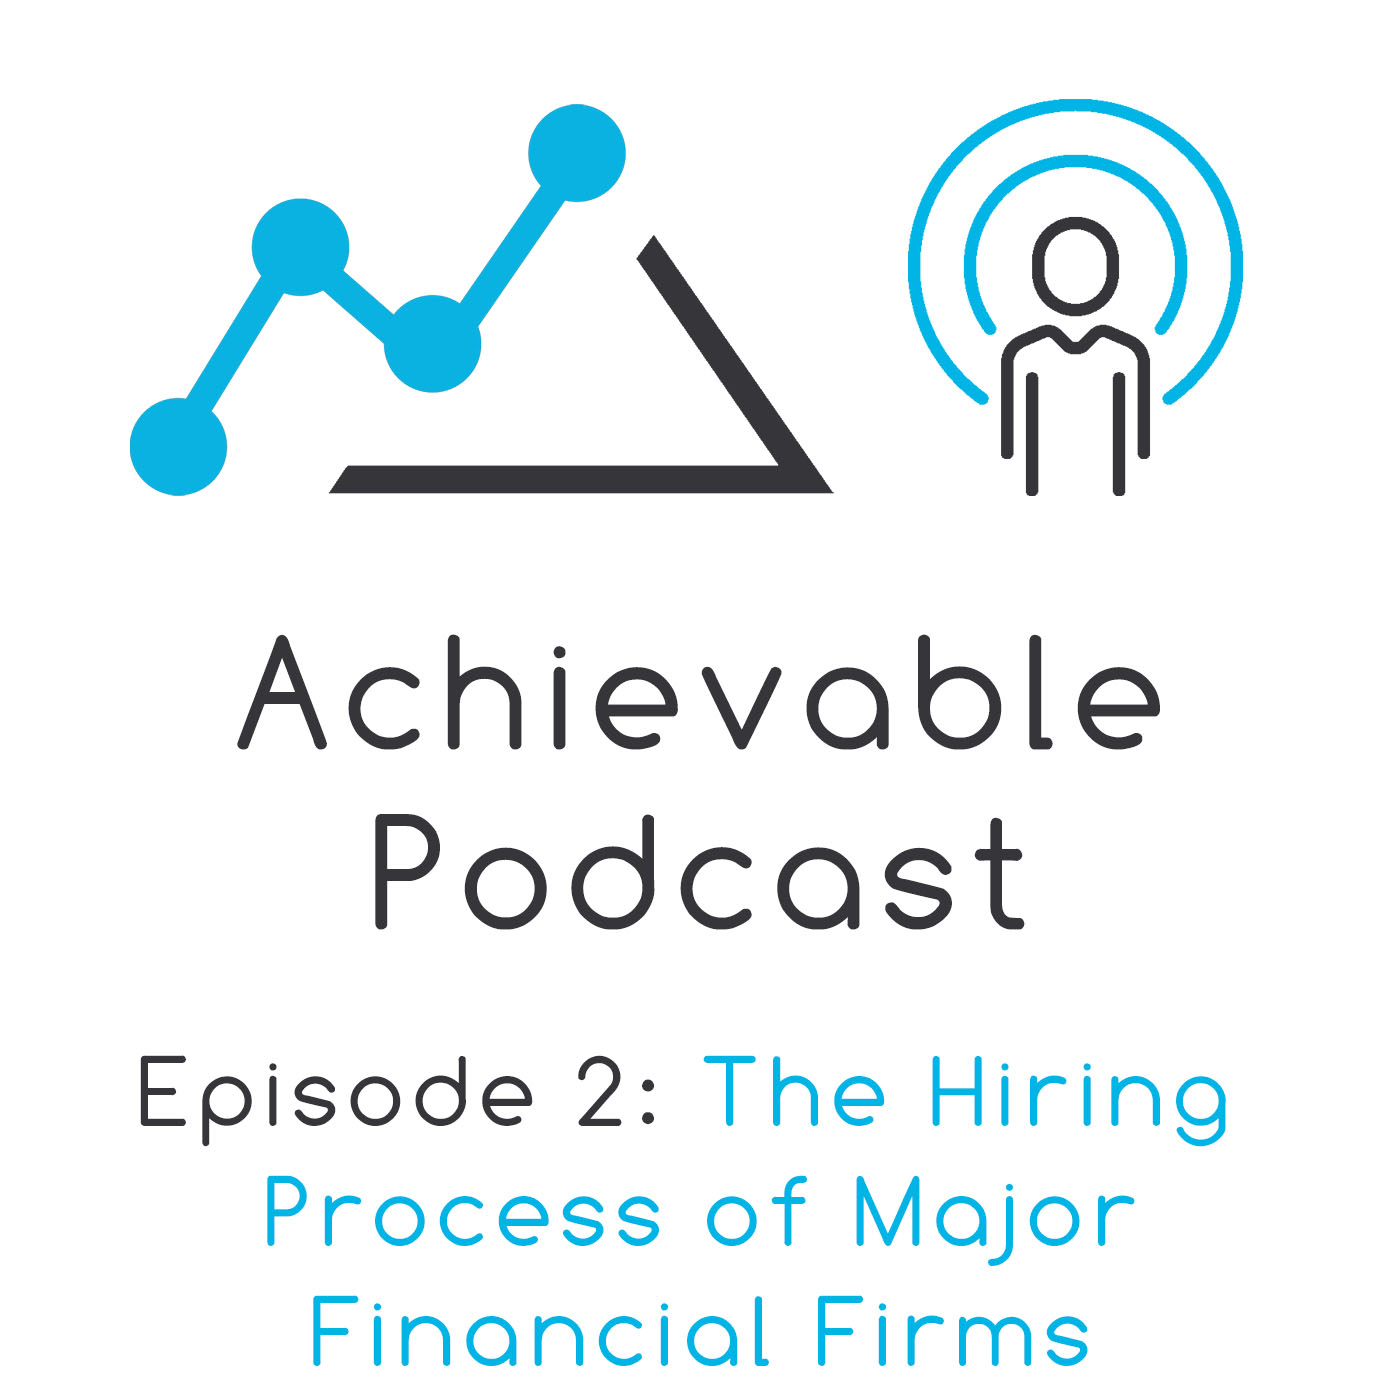 Achievable Podcast #2 - The Hiring Process of Top Financial Firms